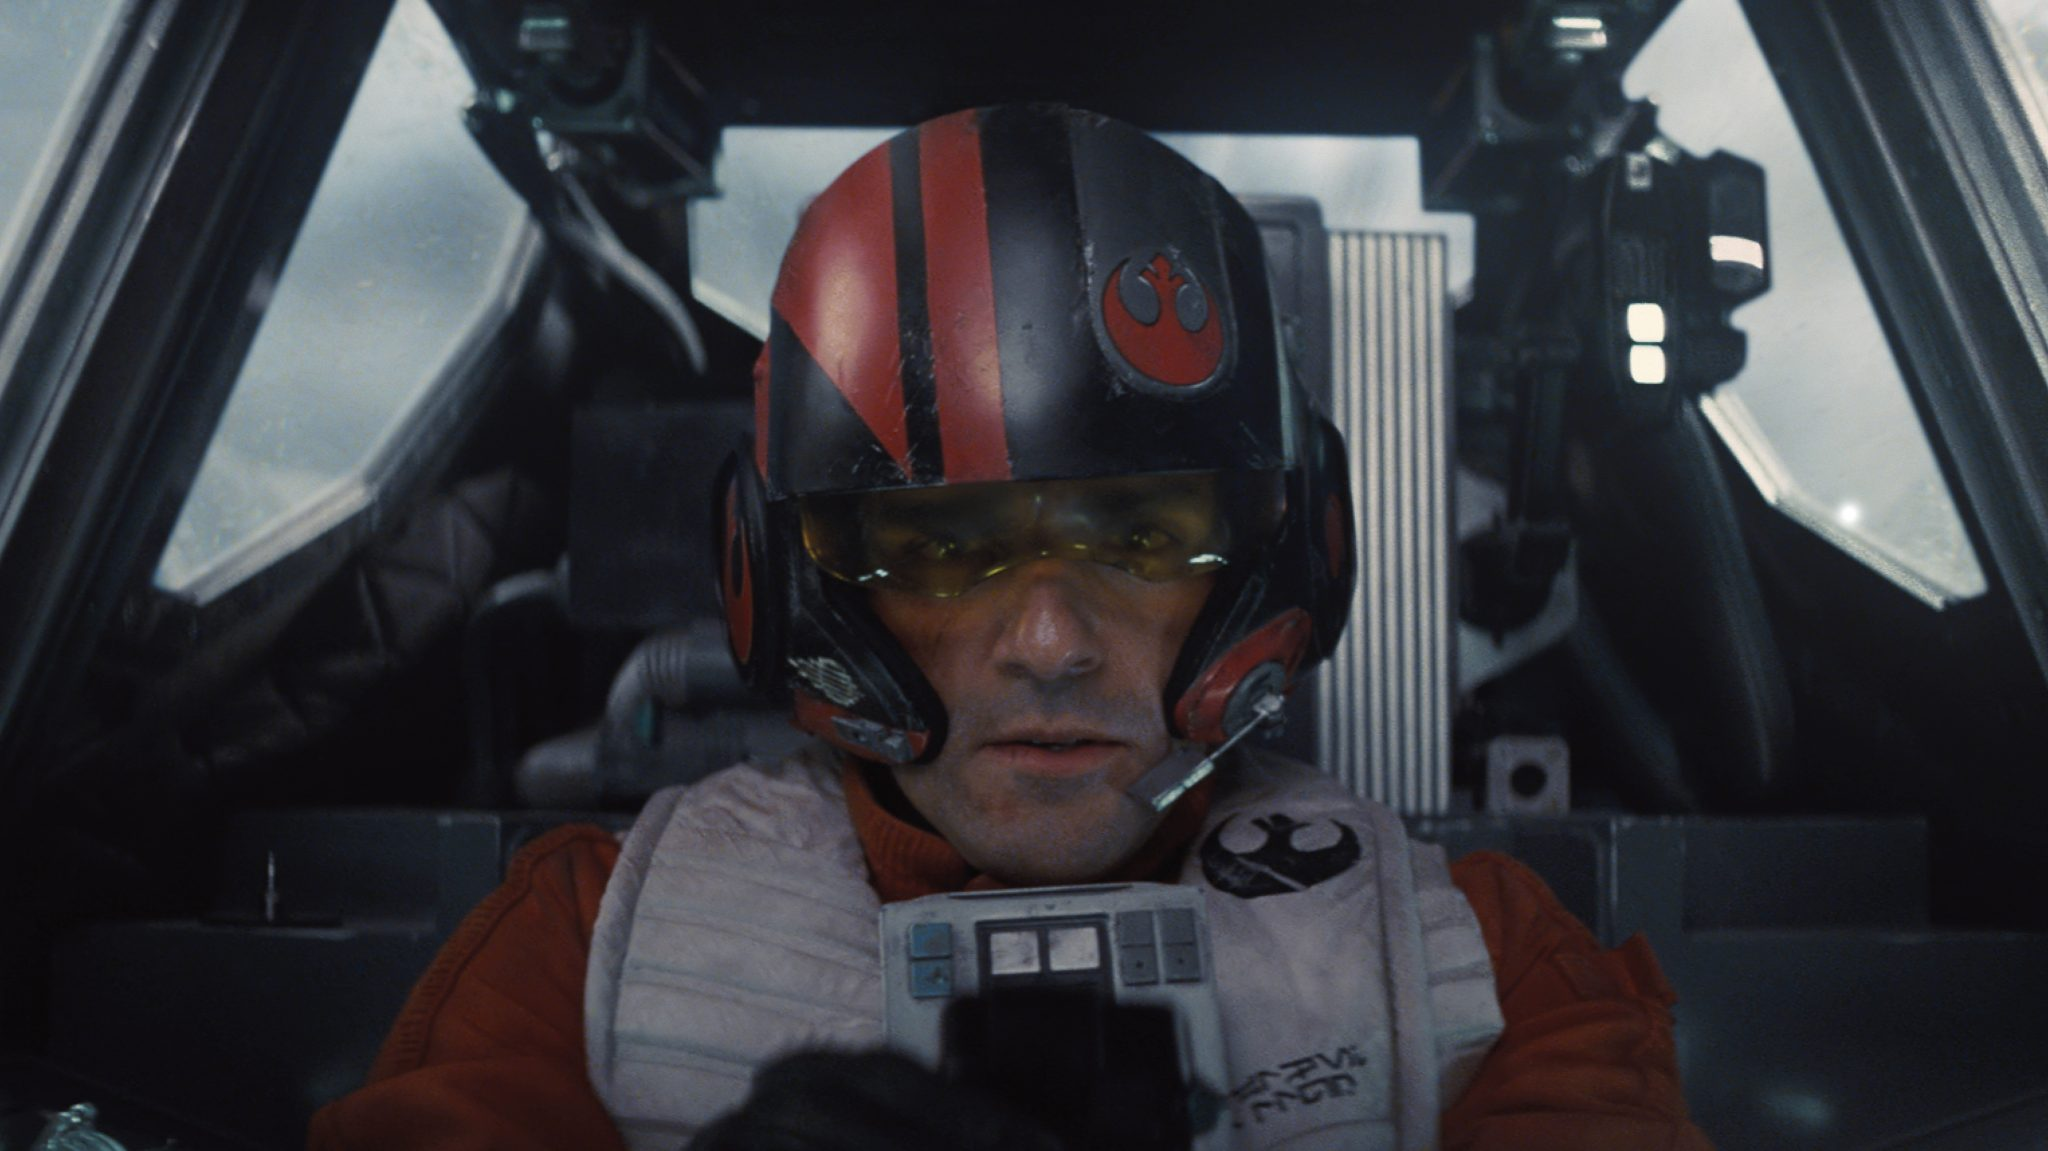 Poe Dameron (Oscar Isaac) in a scene from Star Wars: The Force Awakens